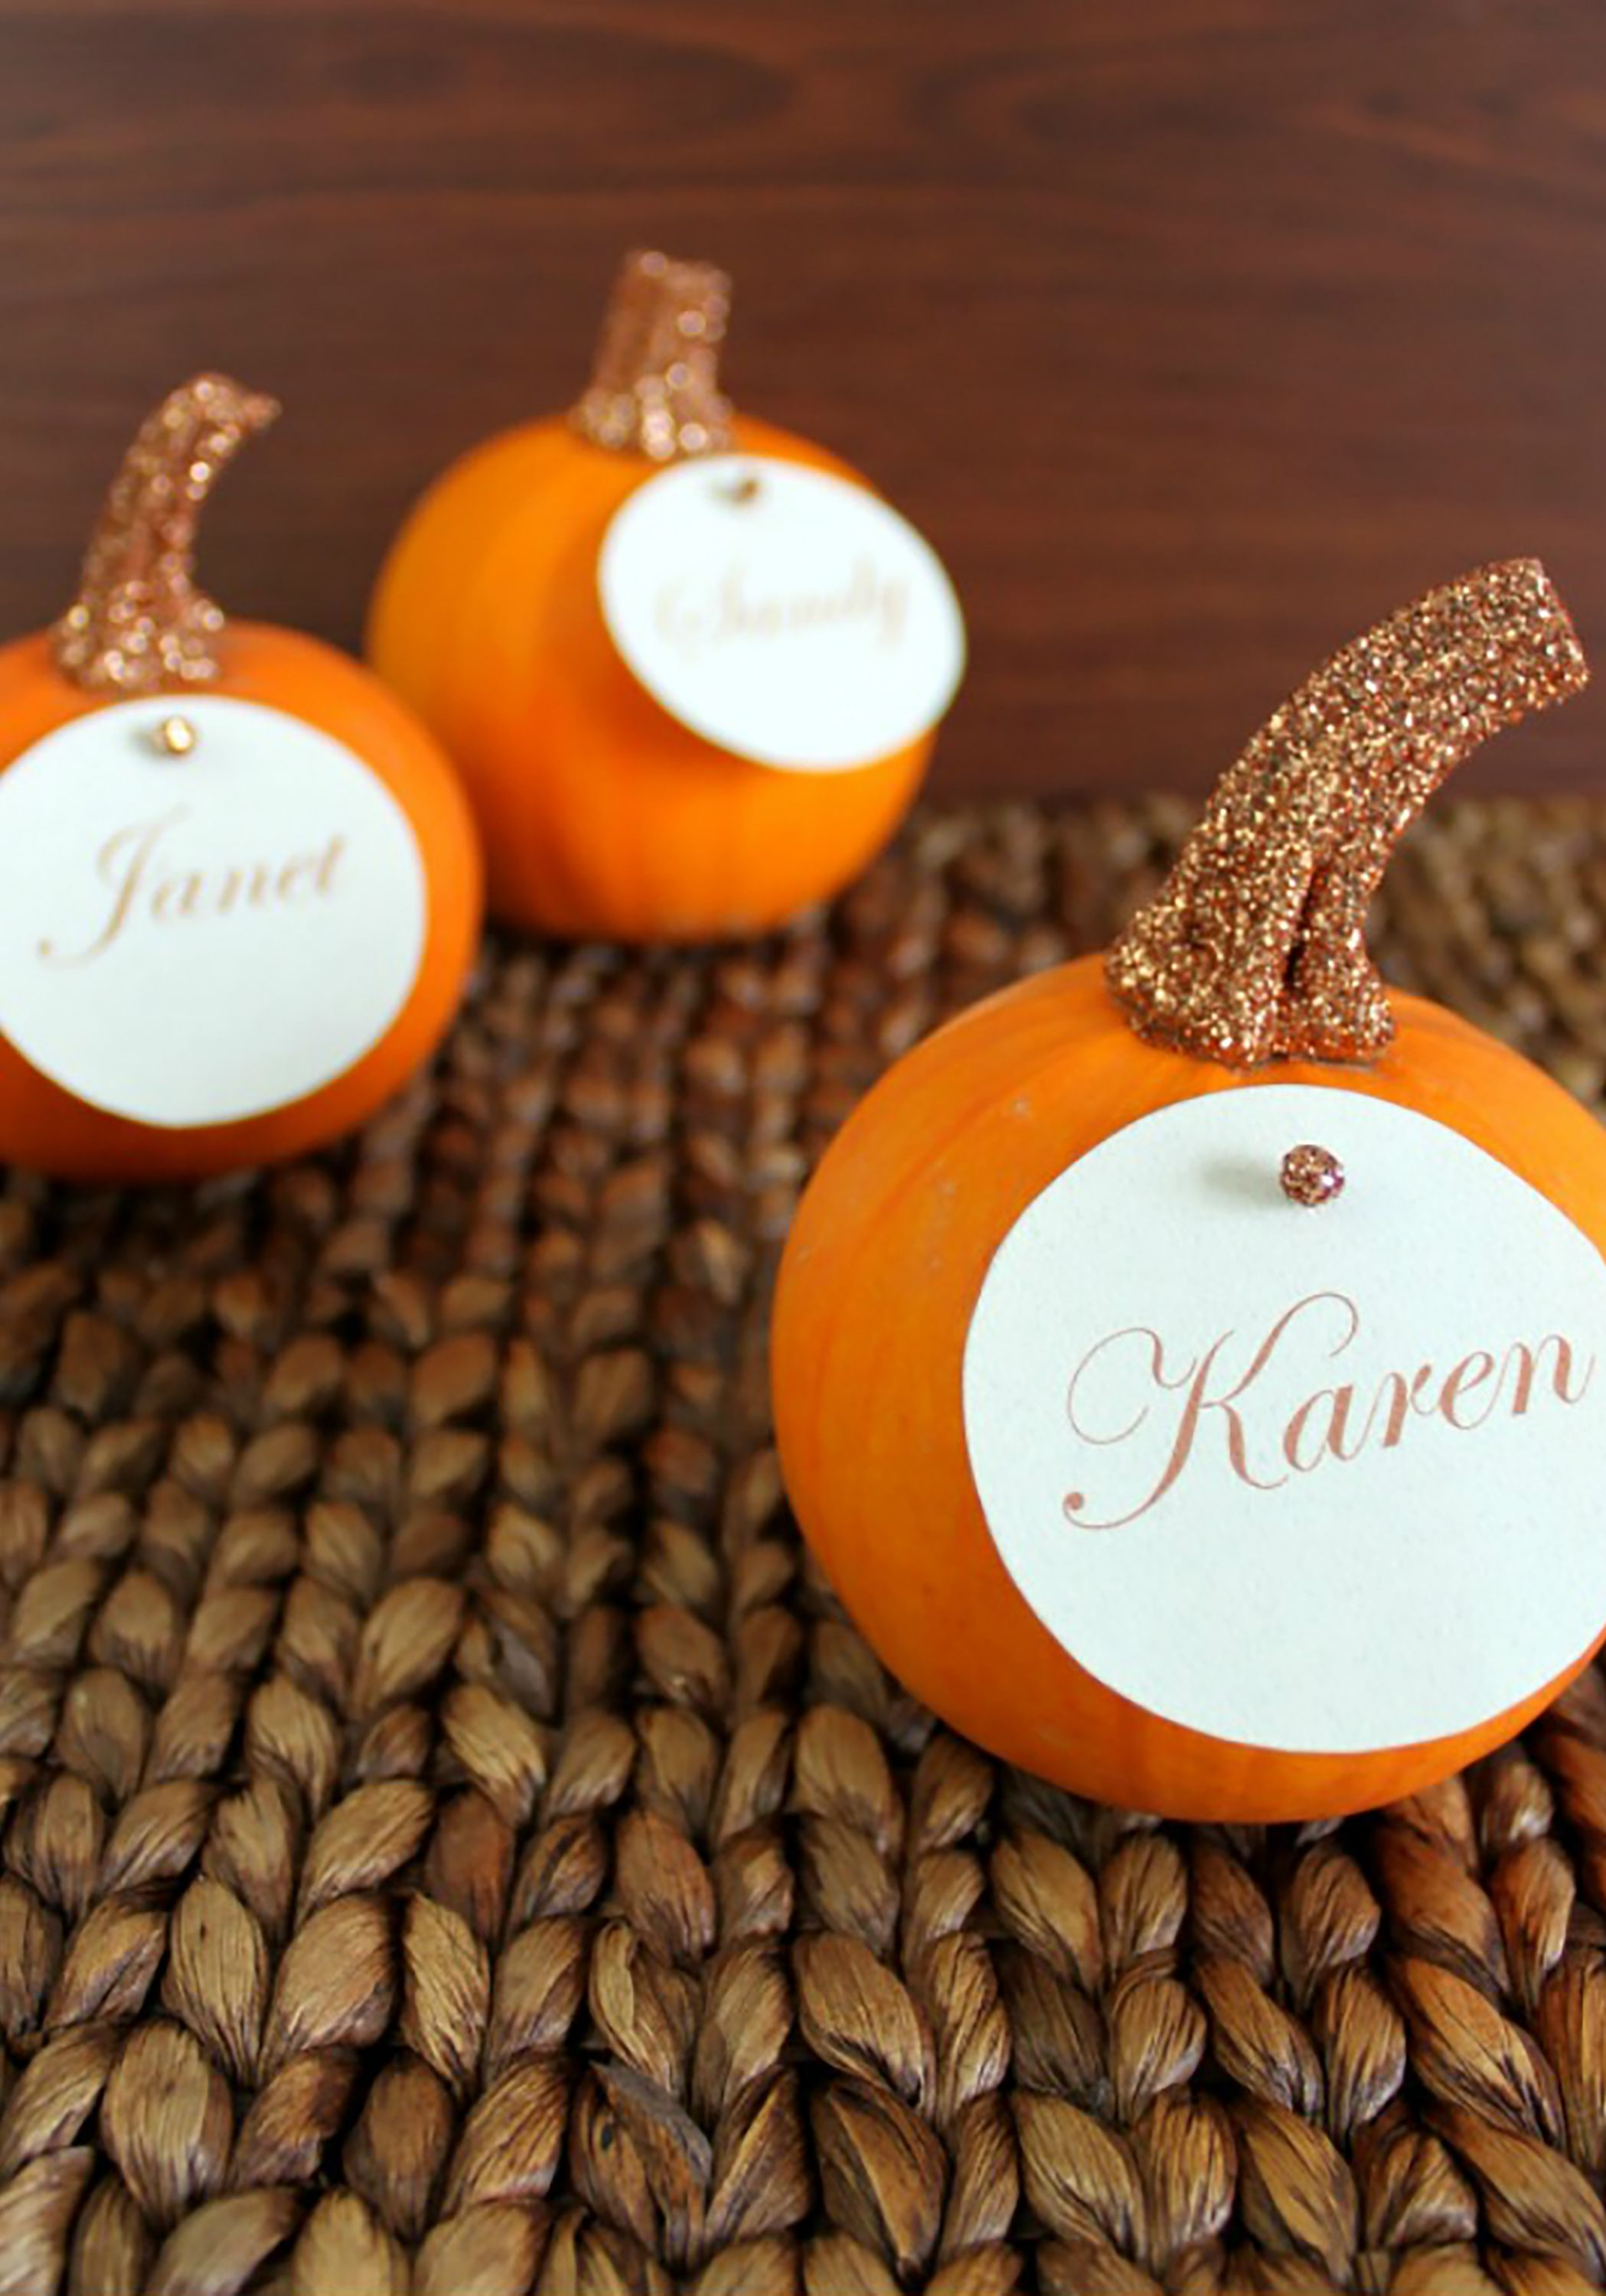 20 thanksgiving place cards diy place card ideas for the holidays - Thanksgiving Place Cards